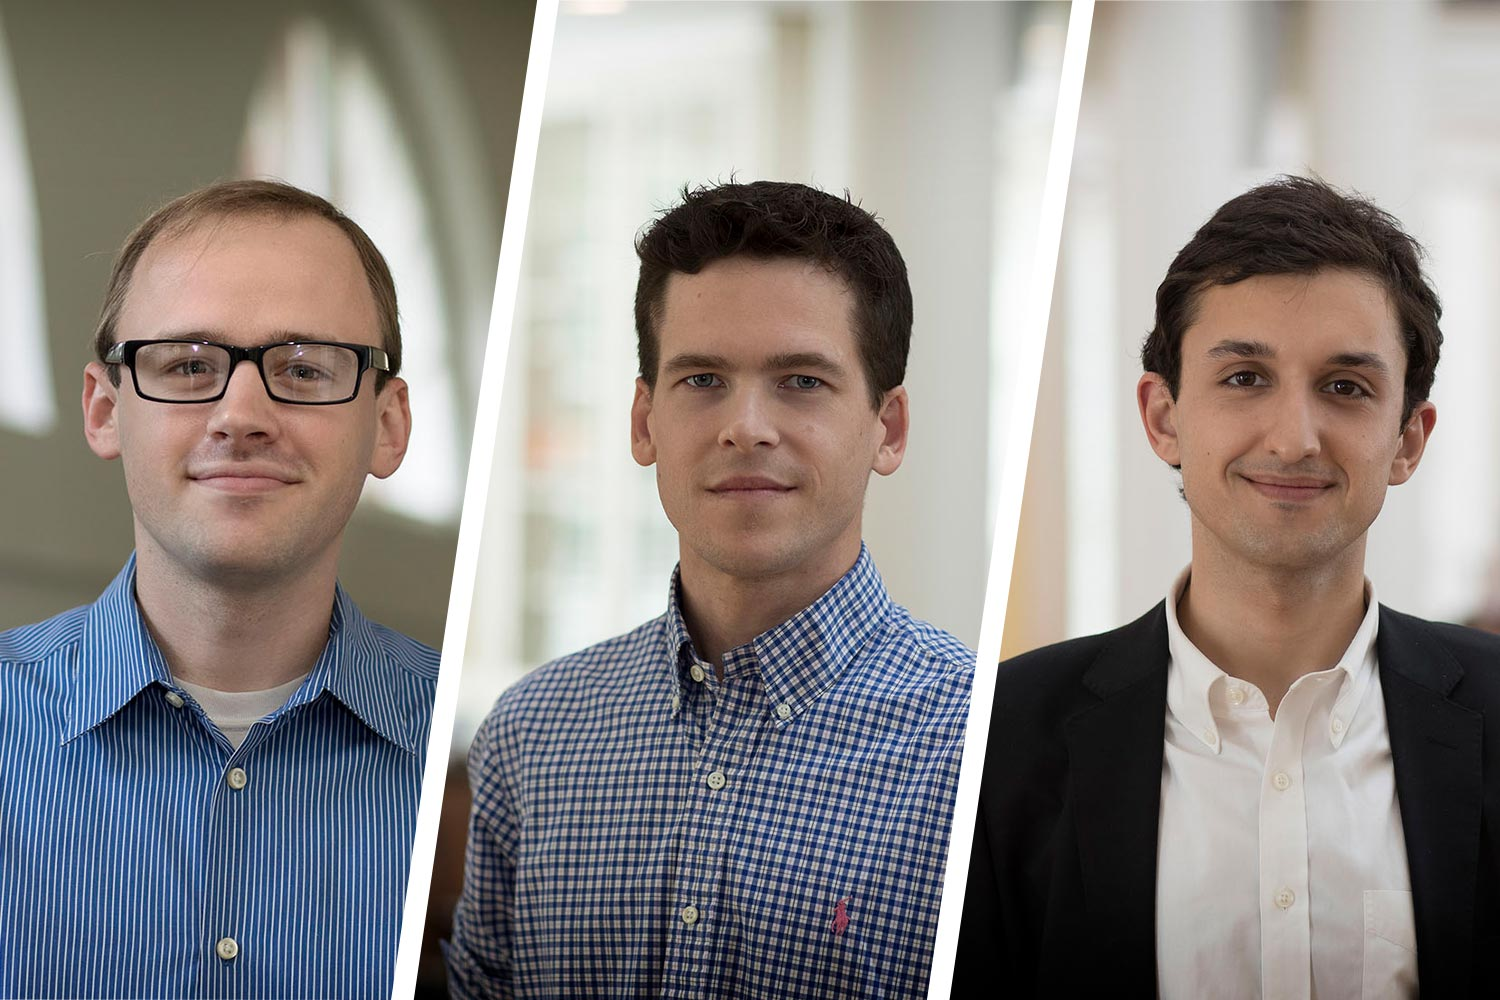 From left: Kyle Chattleton, Neal D. Curtis and Samuel V. Lemley. (Photos by Dan Addison, University Communications)